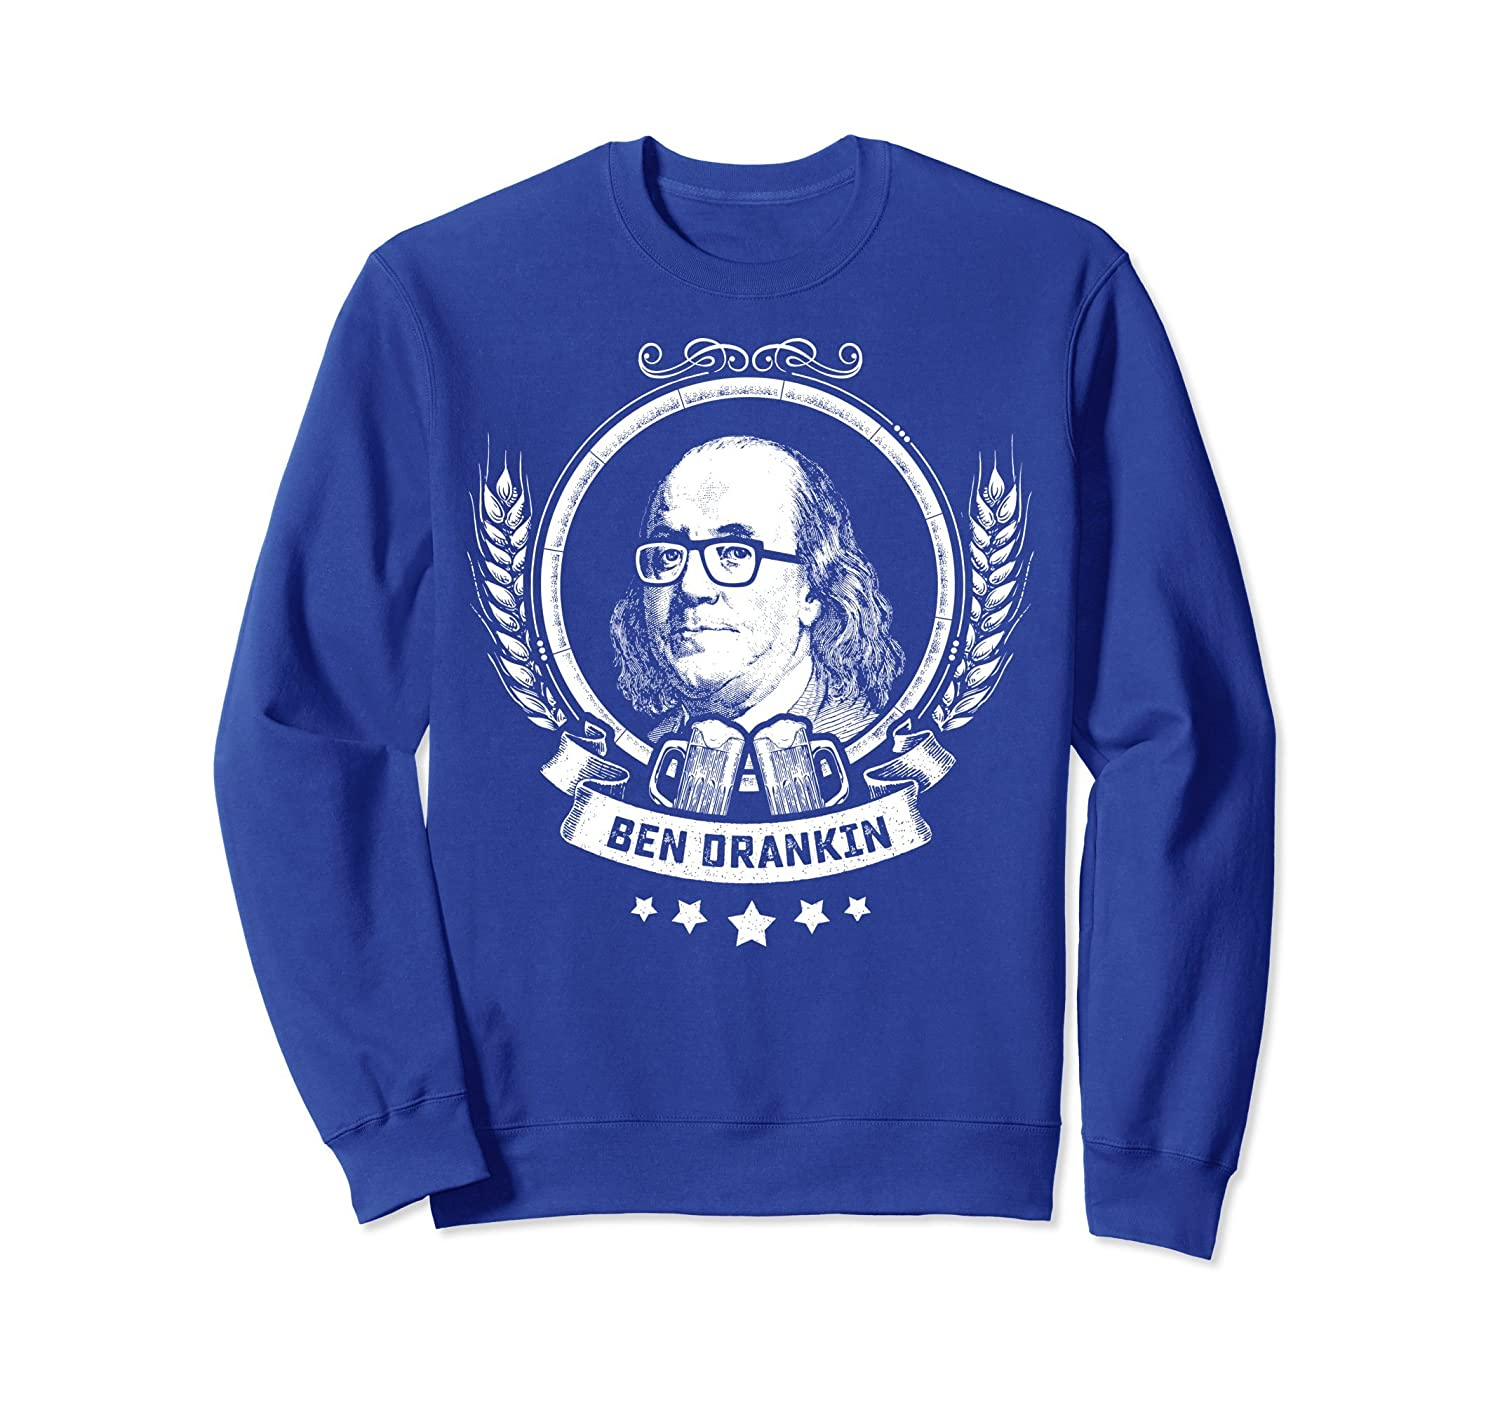 4th July Shirts for Men - Drinking Ben Drankin Sweatshirt-mt